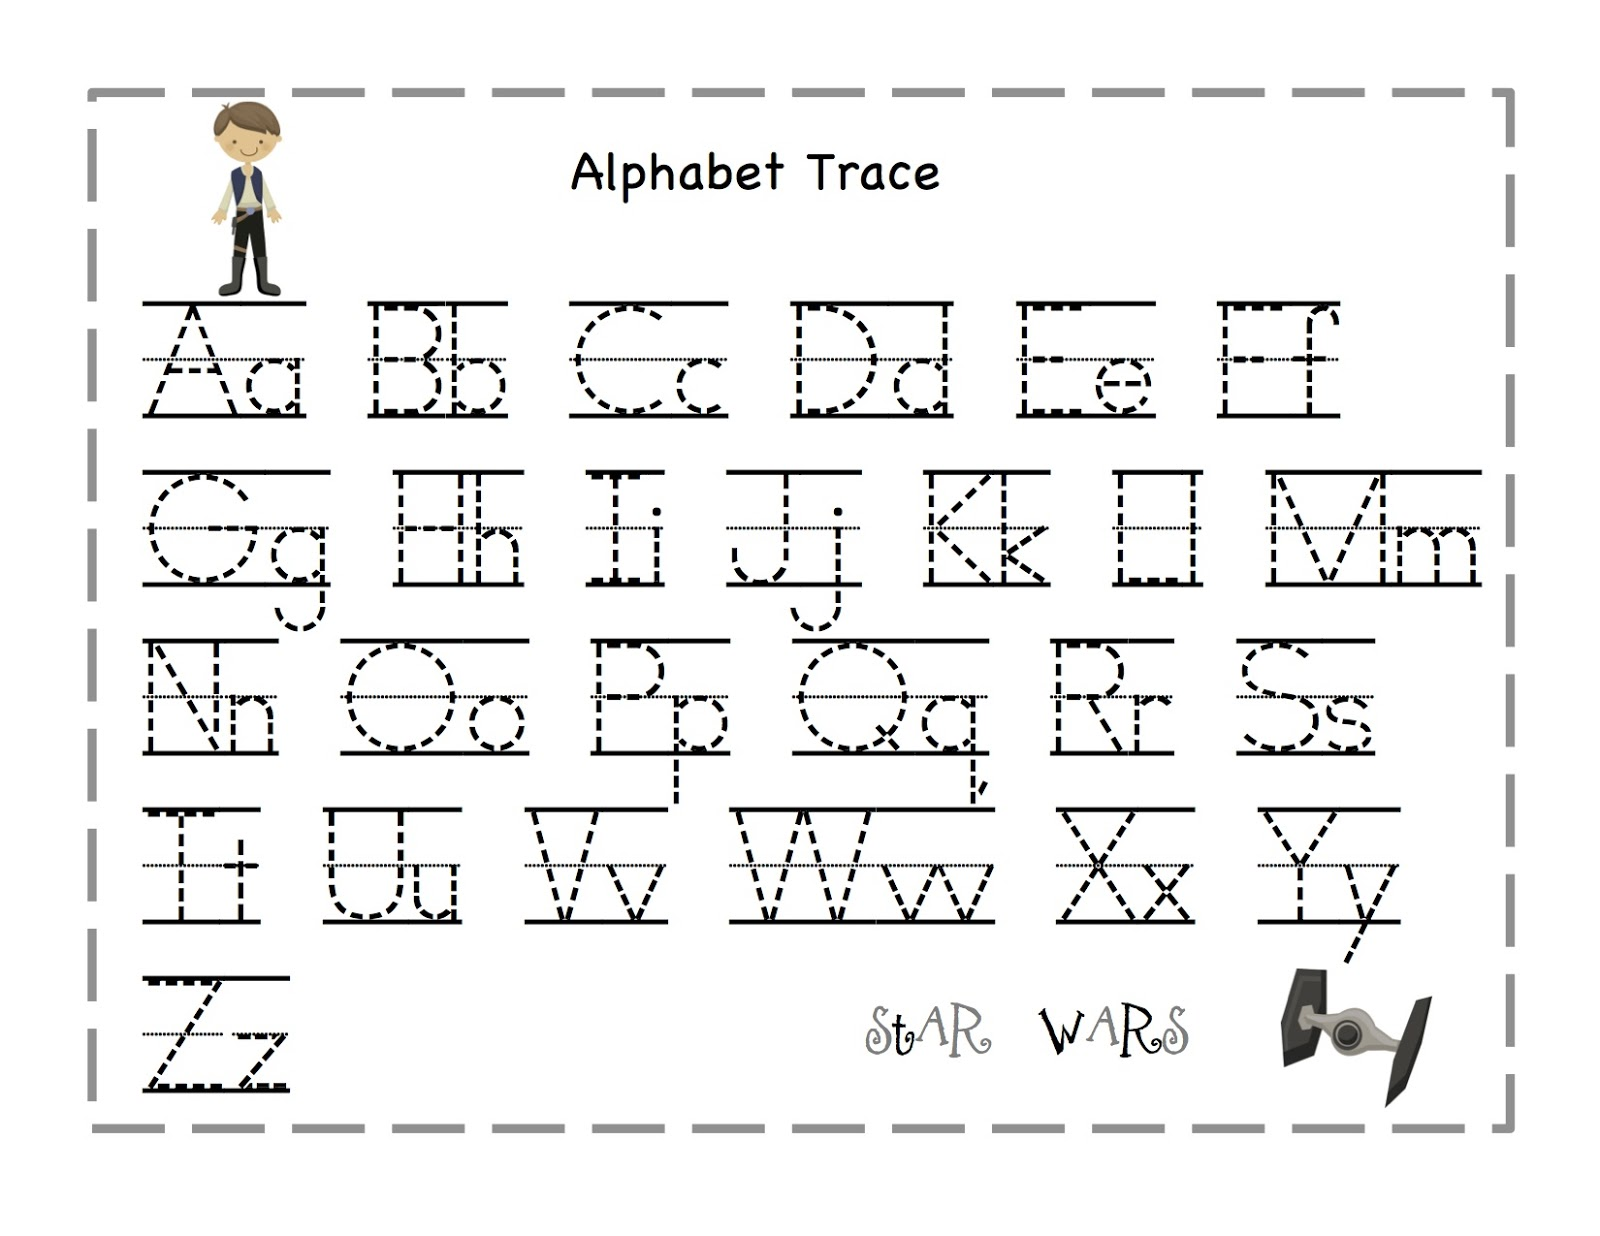 Printables Preschool Alphabet Worksheets A-z free printable alphabet worksheets a z intrepidpath tracing letters coloring traceable letter z